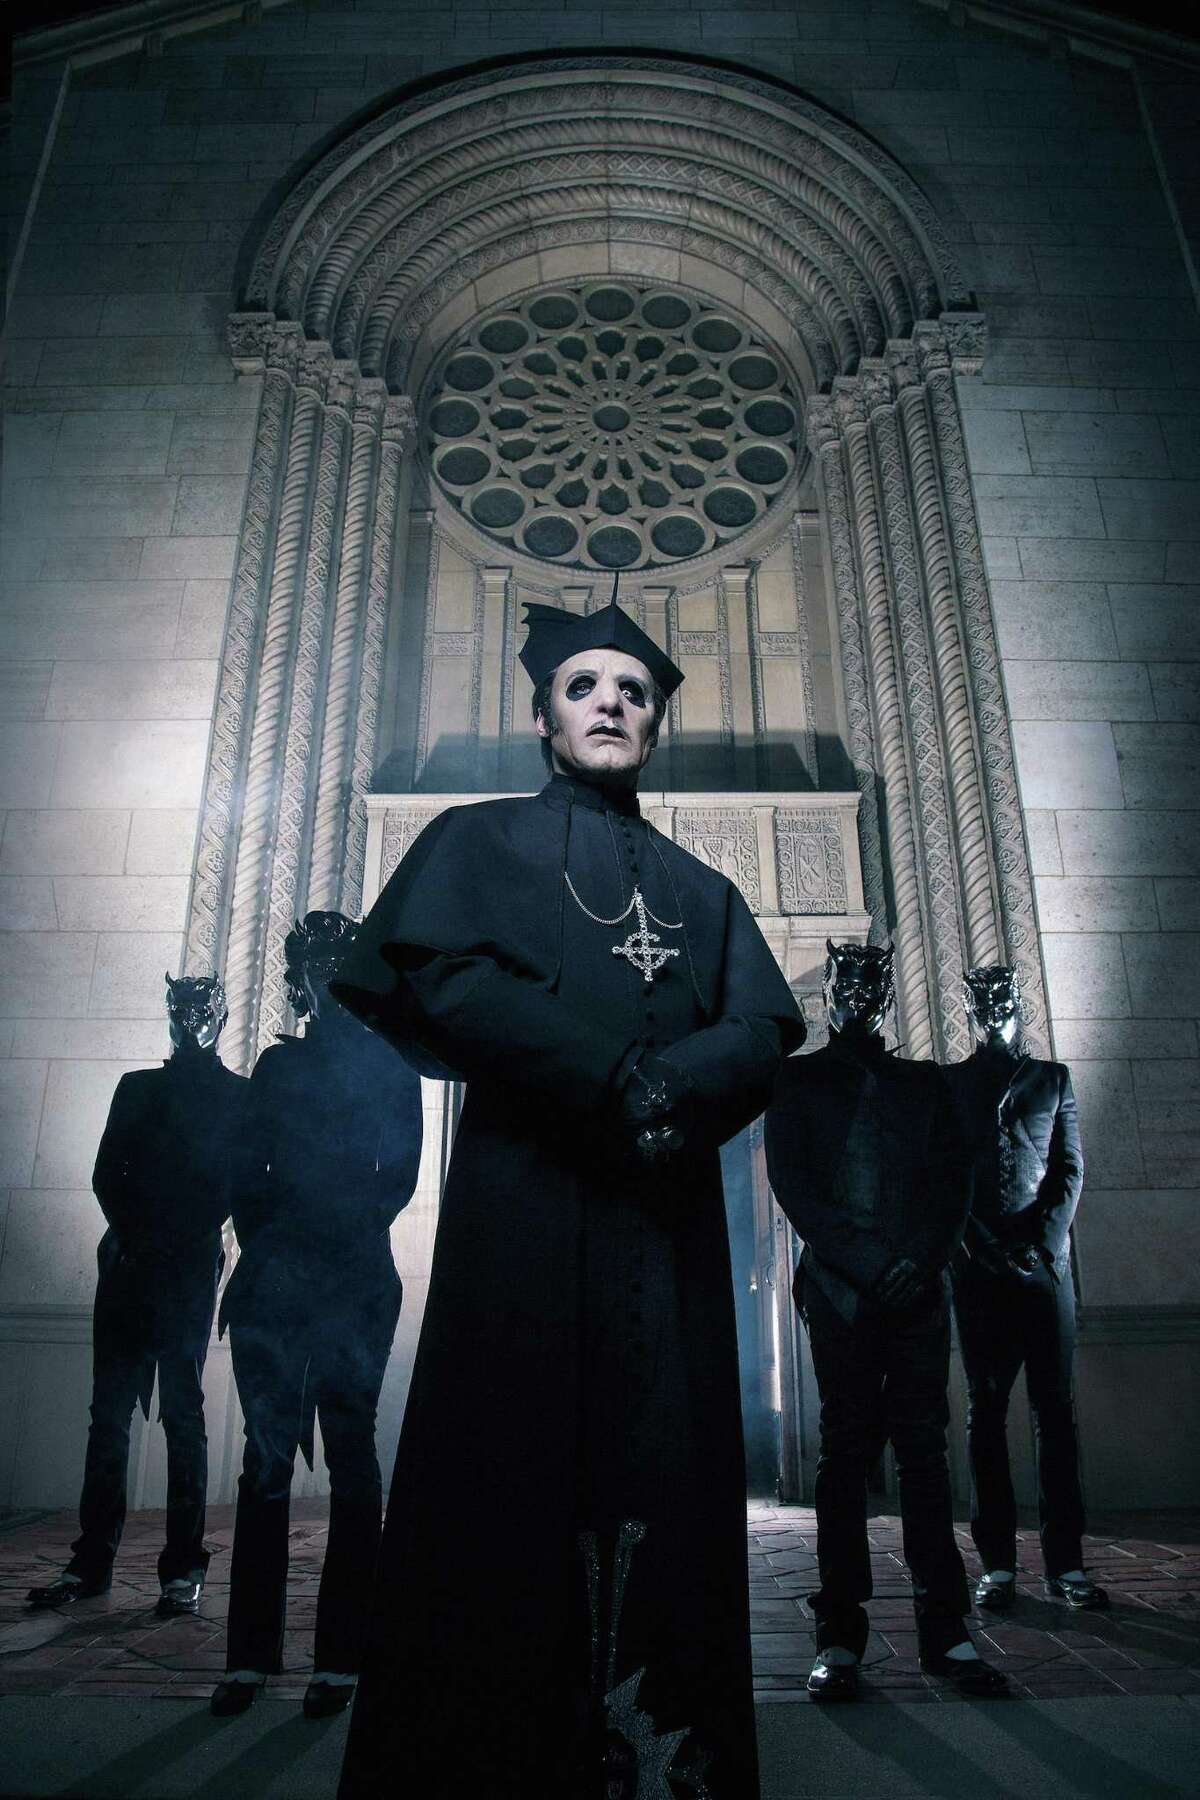 The hard rock band Ghost is debuting it's new leader, Cardinal Copia, on a tour that swings into Houston Tuesday, May 8.